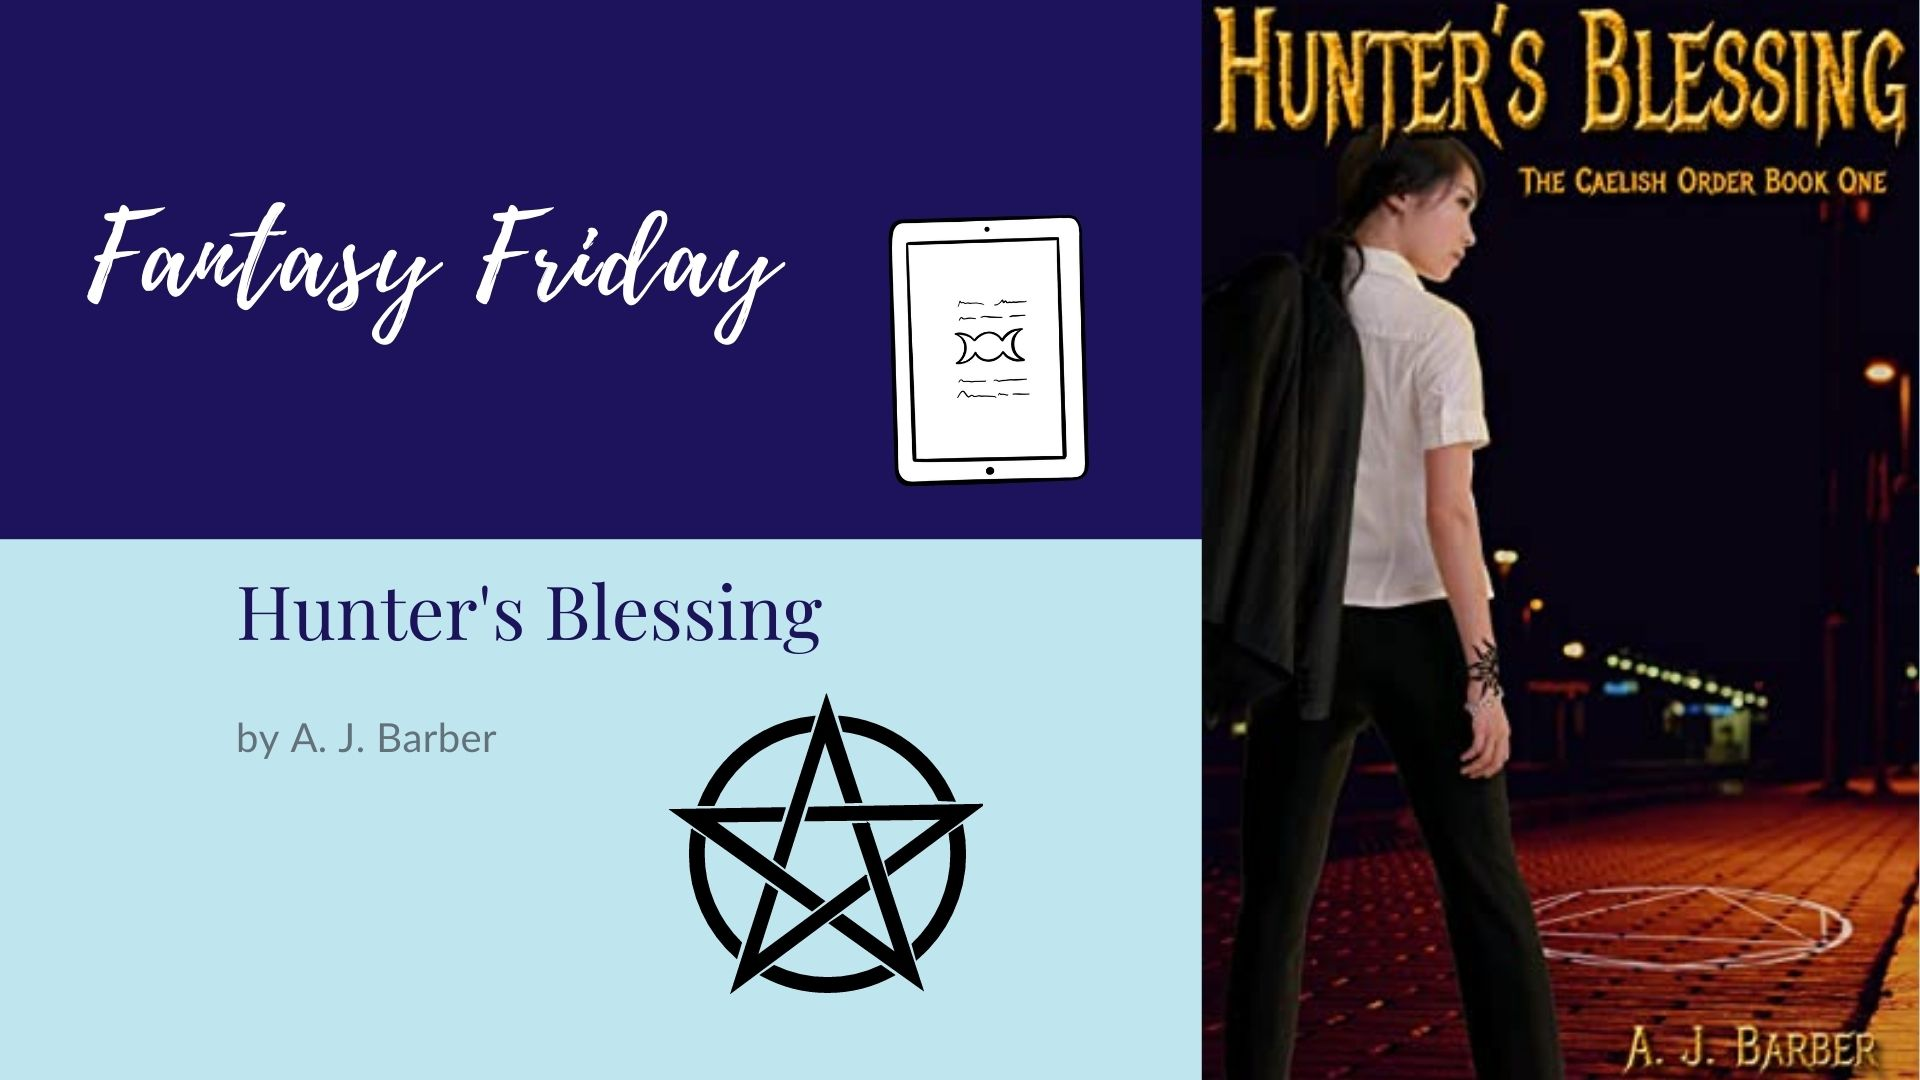 You are currently viewing Fantasy Friday: Hunter's Blessing by A. J. Barber